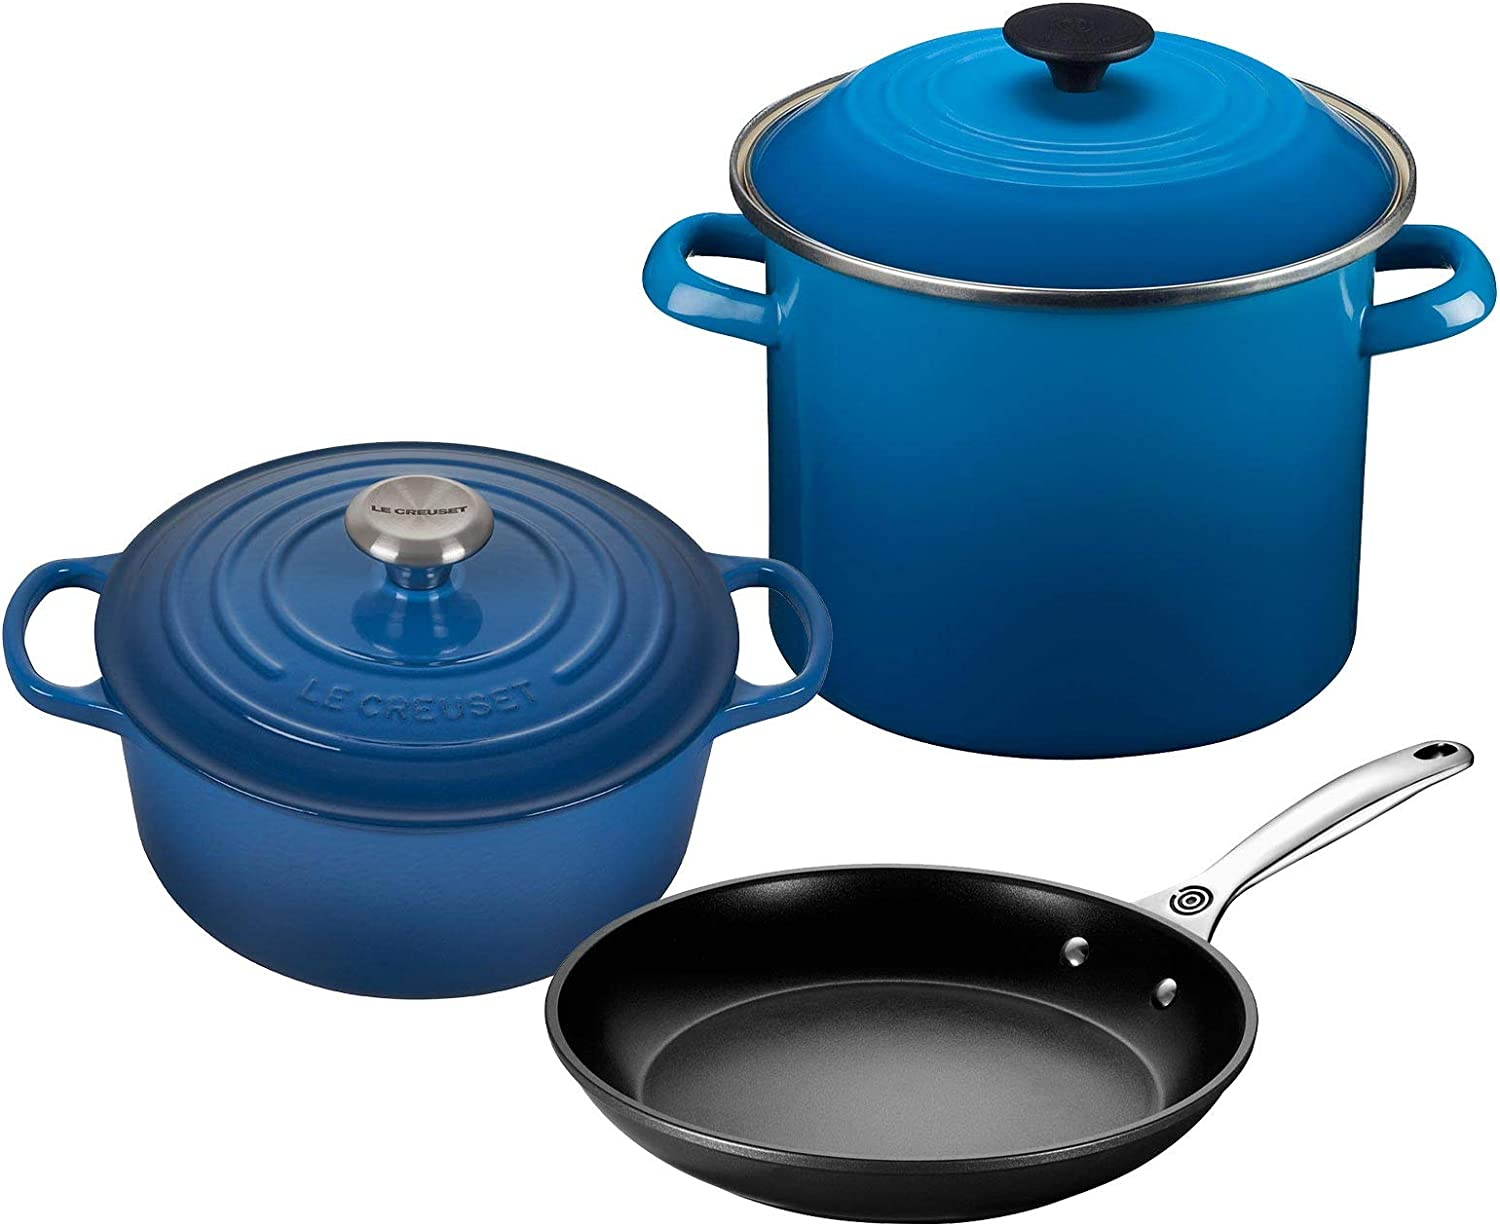 Le Creuset 5-Piece Oven and Stovetop 2 Popular brand in the world Cookware Challenge the lowest price of Japan 4-1 Bundle with